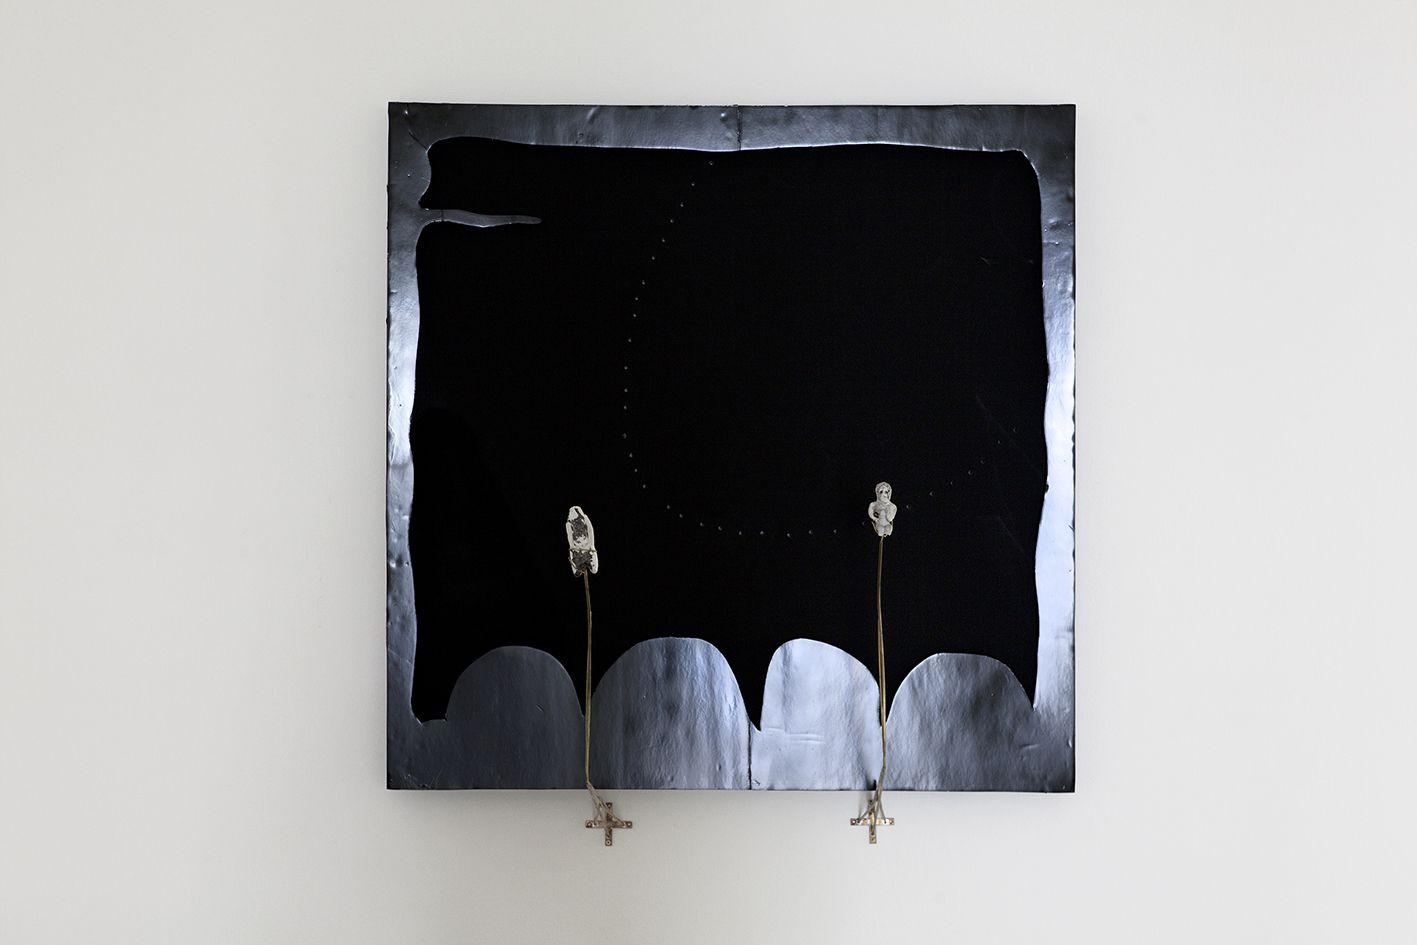 Gedi Sibony, Held By Hands, 2012, Acrylic paint, canvas, foam core, brass, plaster, 51 1/8 x 51 1/8 inches